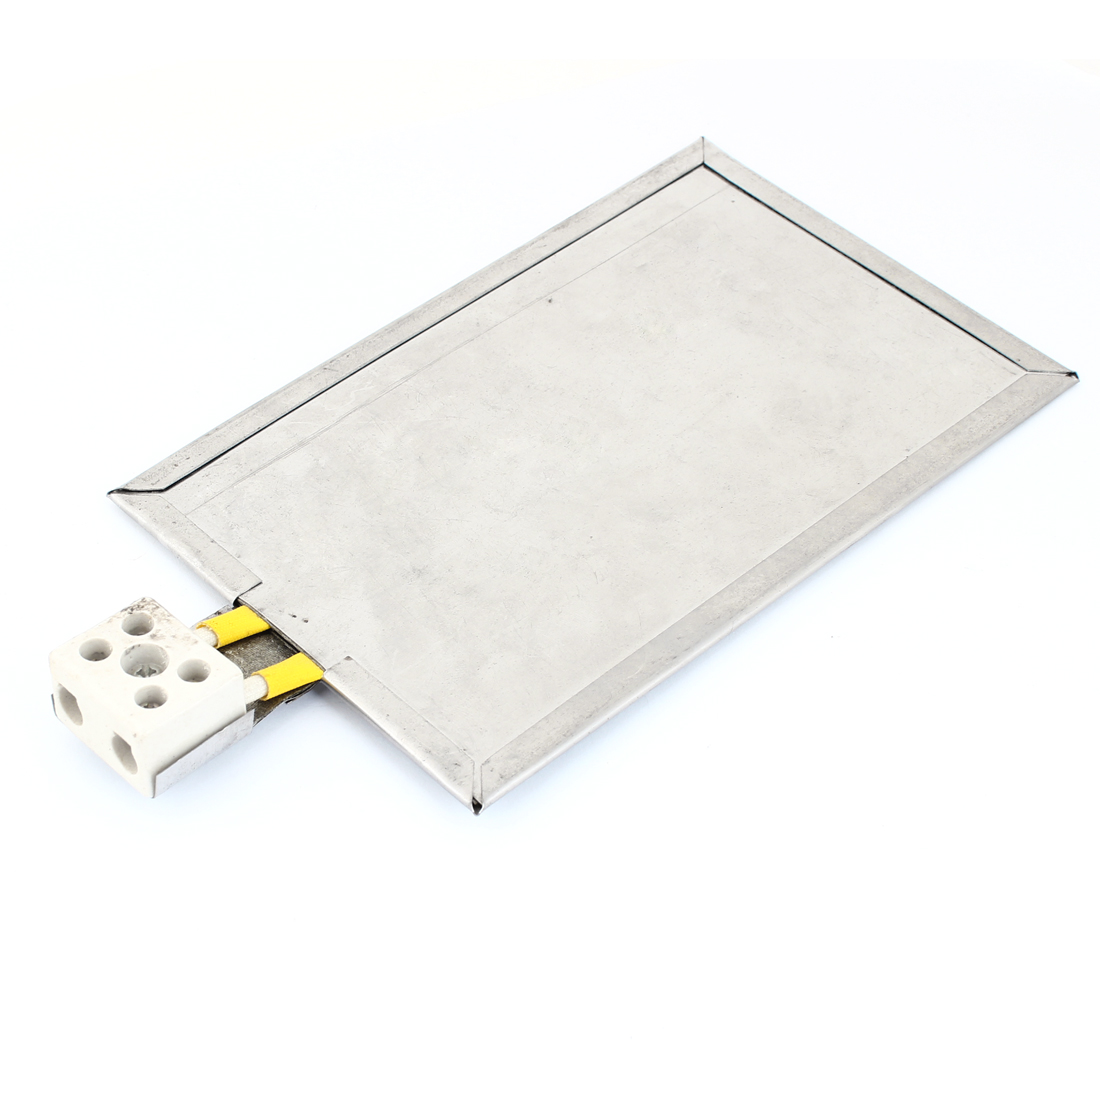 Ceramic Plug 2 Wired Stainless Steel Heating Board 200mm x 125mm